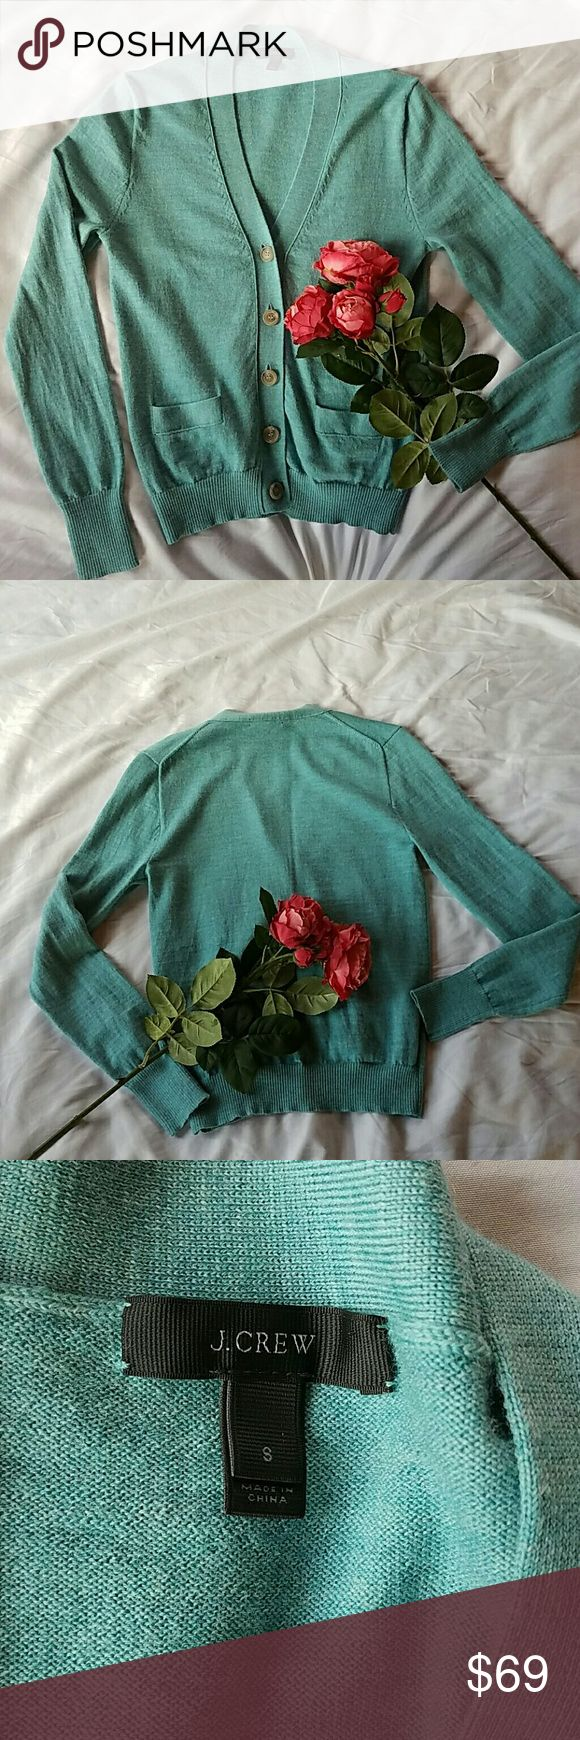 🍒LAST PRICE!!🍒 J. Crew Ladies Merino Cardigan This is a breathtaking, robin's-egg-blue cardigan in brand new condition! I had such a hard time listing this item- I just about kept it for myself... 😉 No kidding! I adore the pockets and the classic, chic look! Don't pass it up! Hand wash. 100% merino wool J. Crew Sweaters Cardigans